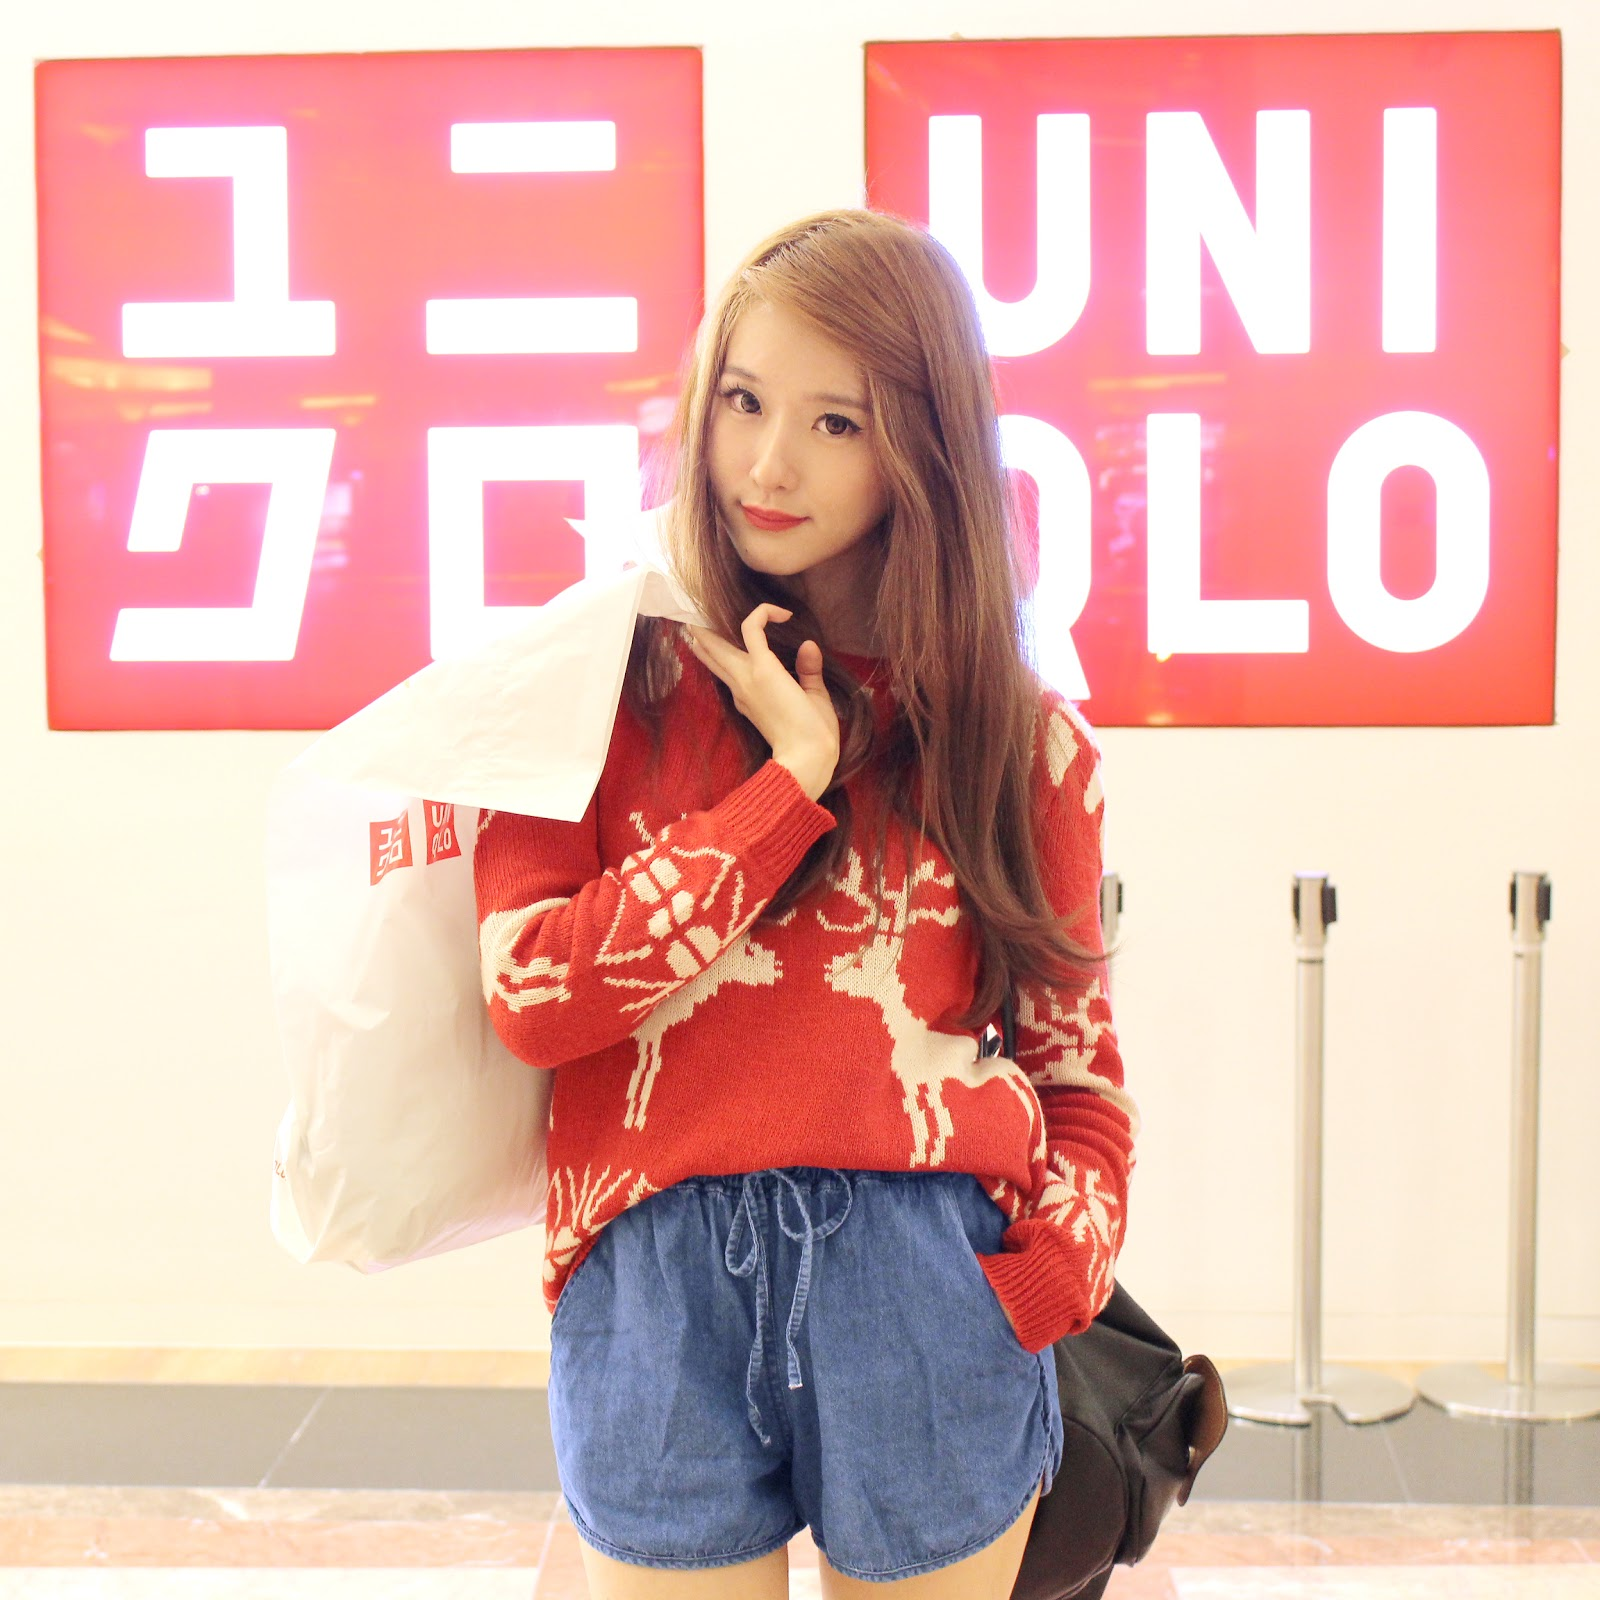 Etude House Disney Xoxo Minnie Elle And Jess Bloglovin Tendencies Kaos No Exuces Putih S Gowigasa Red Knit Reindeer Sweater Upcoming Collection Chambray Relax Shorts In Blue Jeans